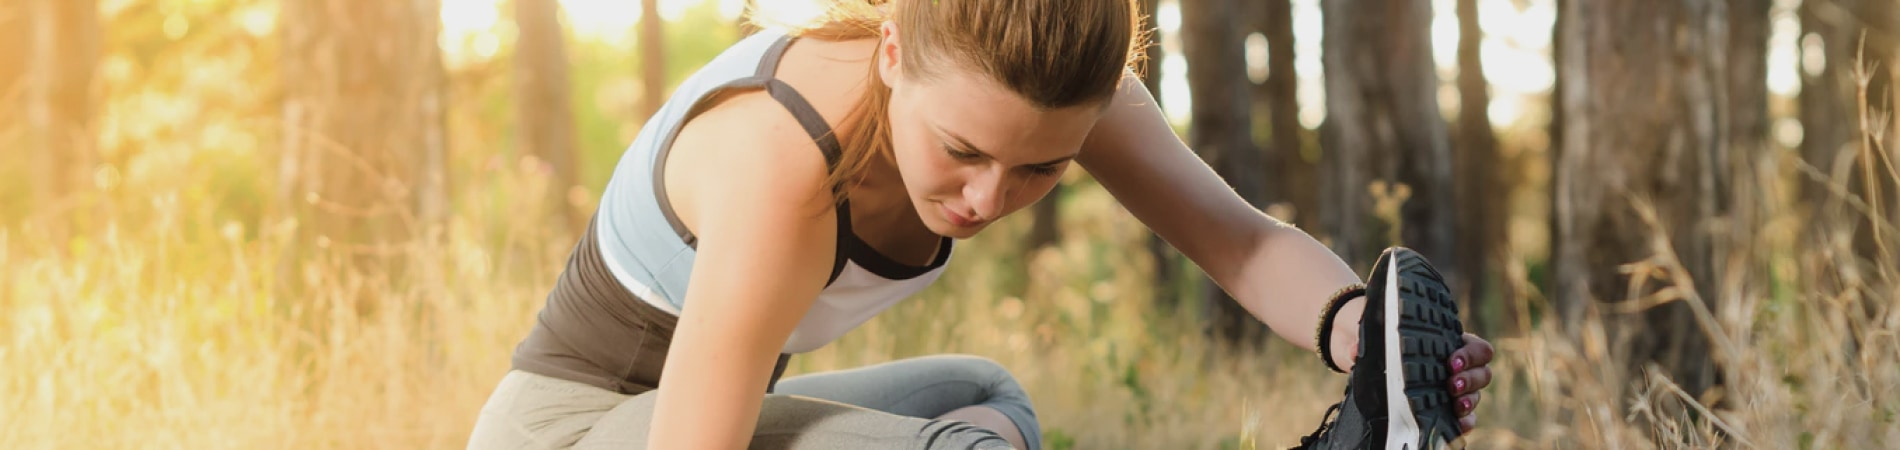 Woman stretching for wellbeing